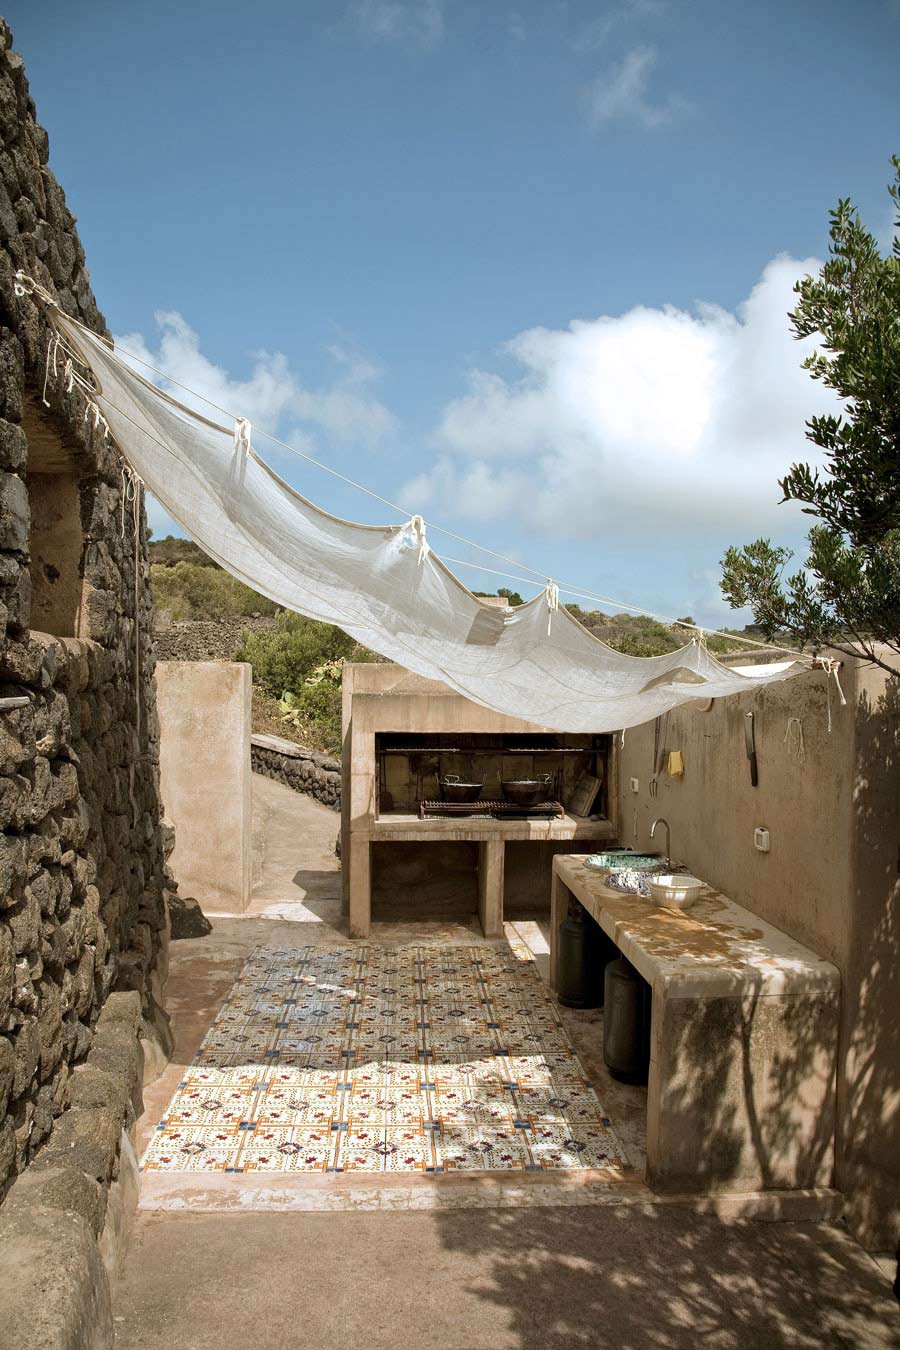 Outdoor Kitchen, Casa Albanese, Island of Pantelleria, Italy by ASA Studio Albanese